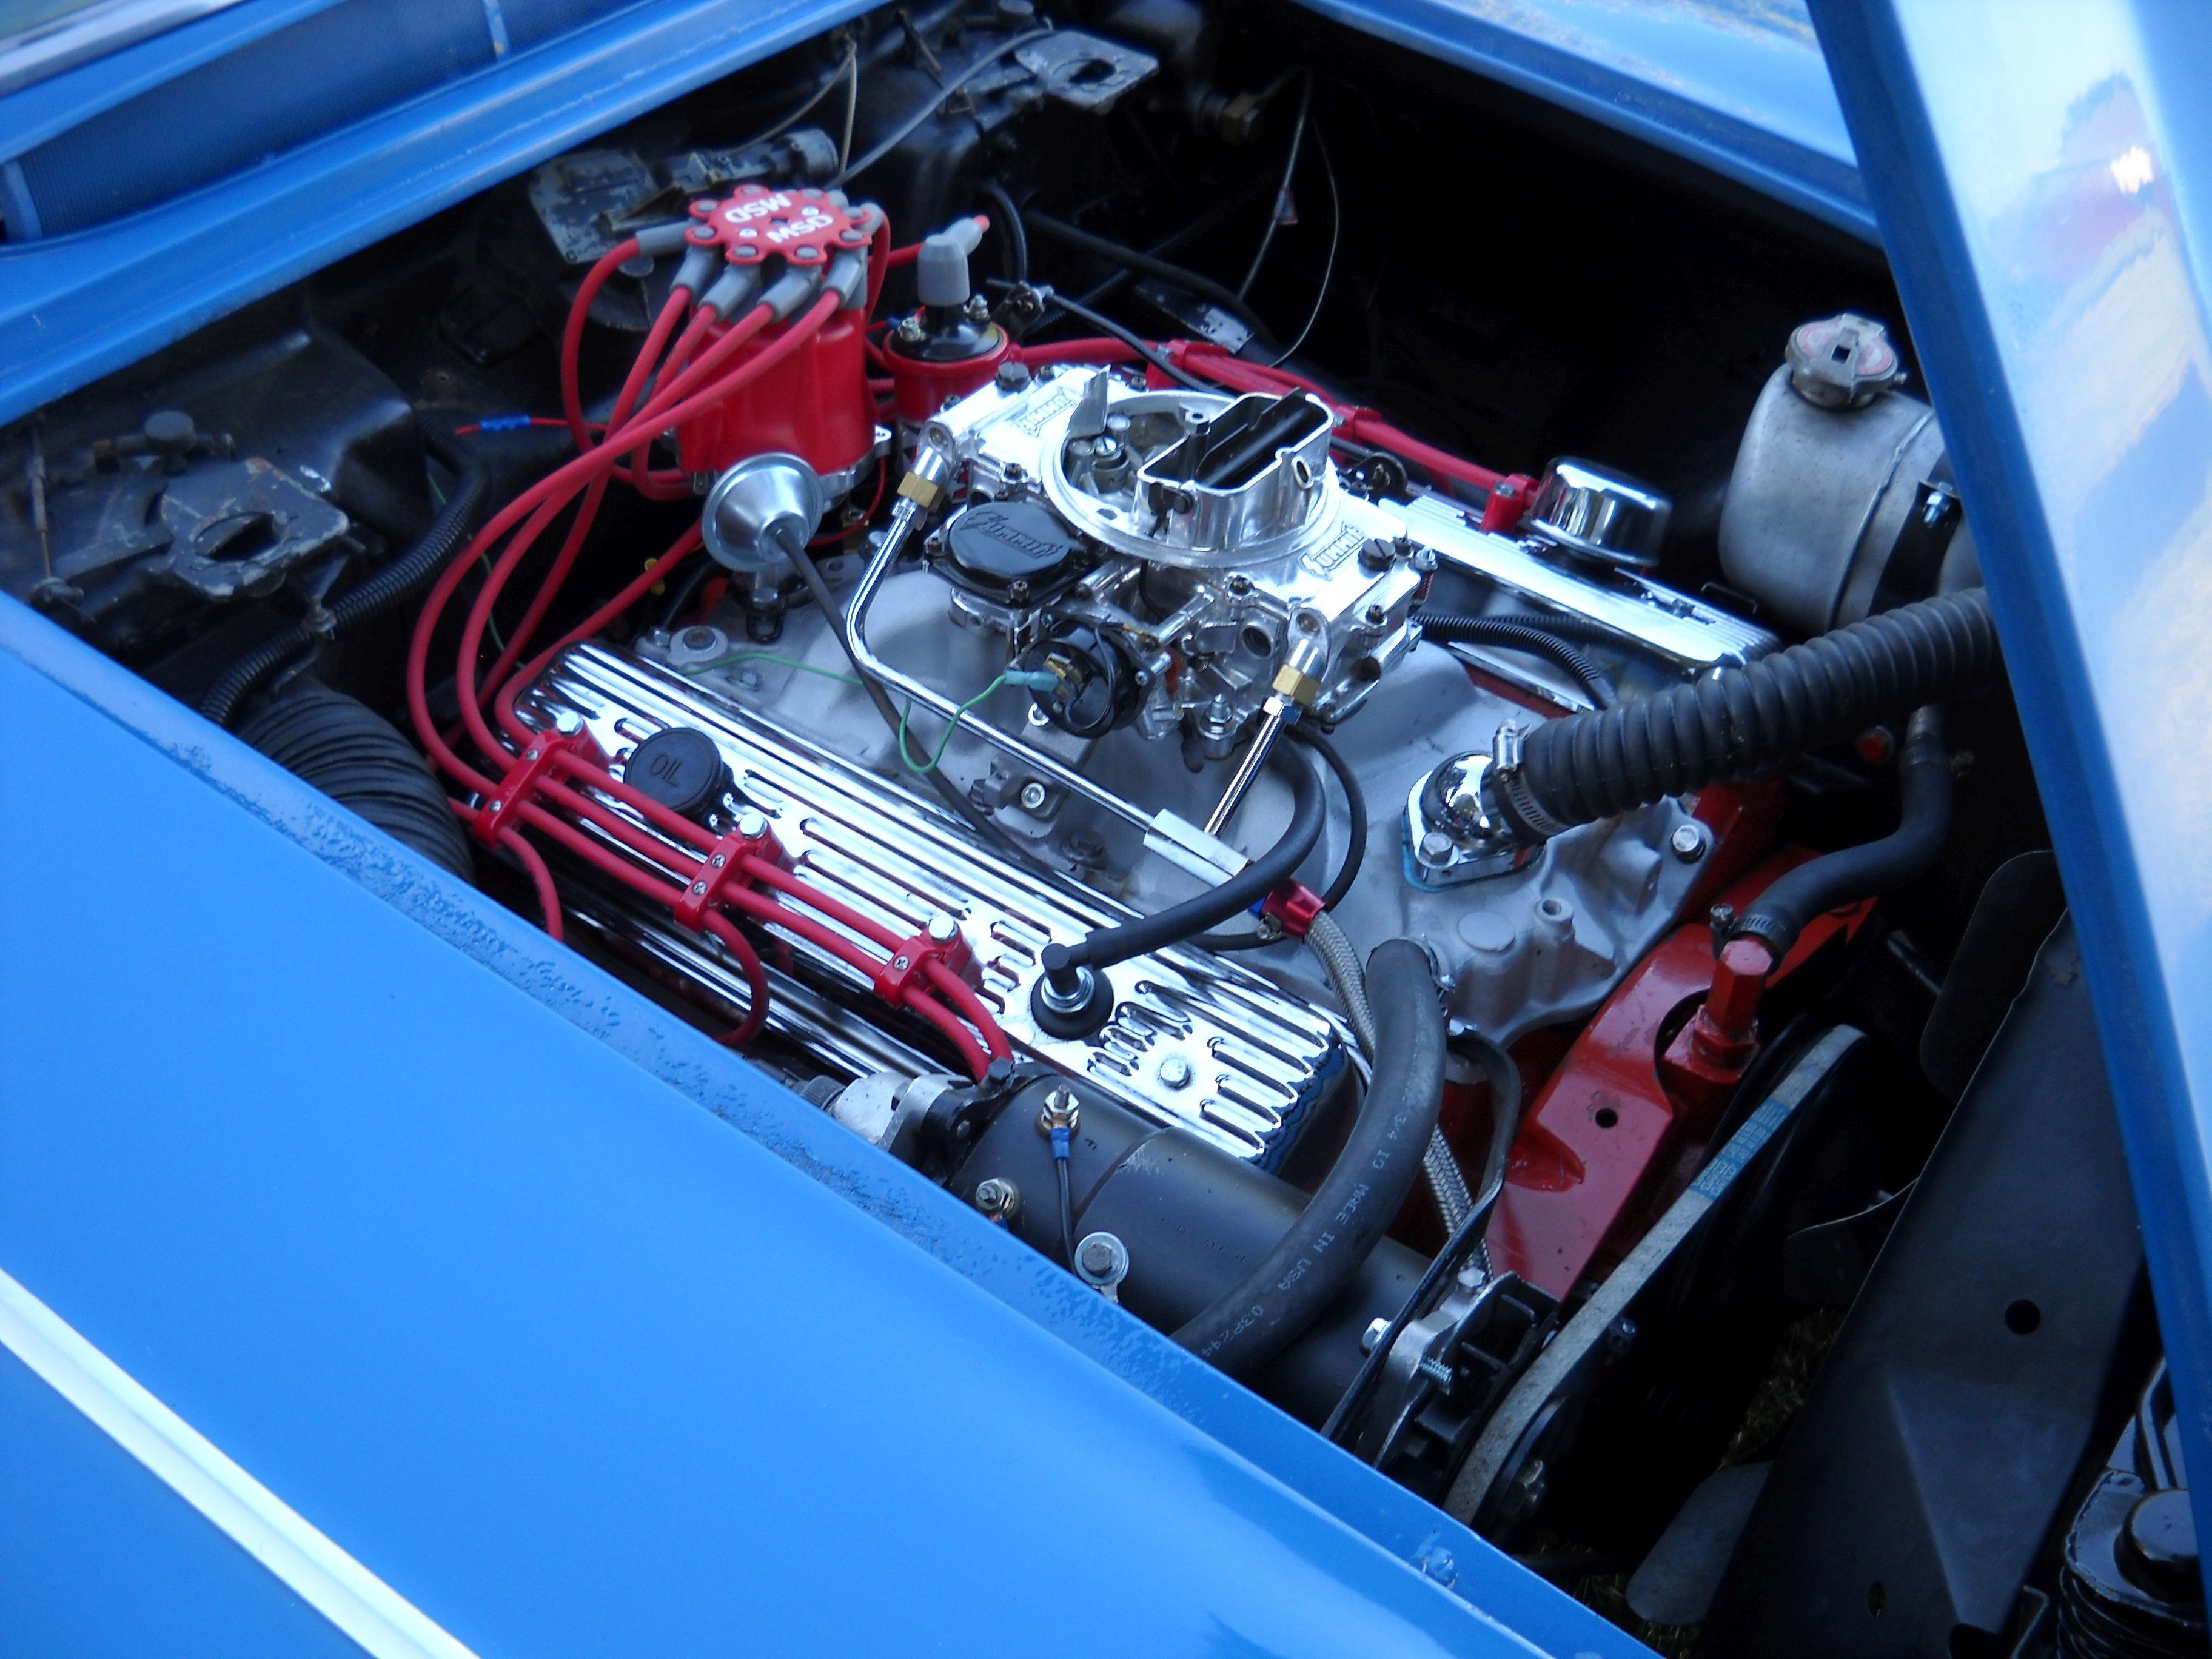 355ci crate engine small block gm style longblock iron heads blueprint engines customer dennis jankowski has installed our bp35511ct1 in this sweet 1961 chevy corvette malvernweather Image collections